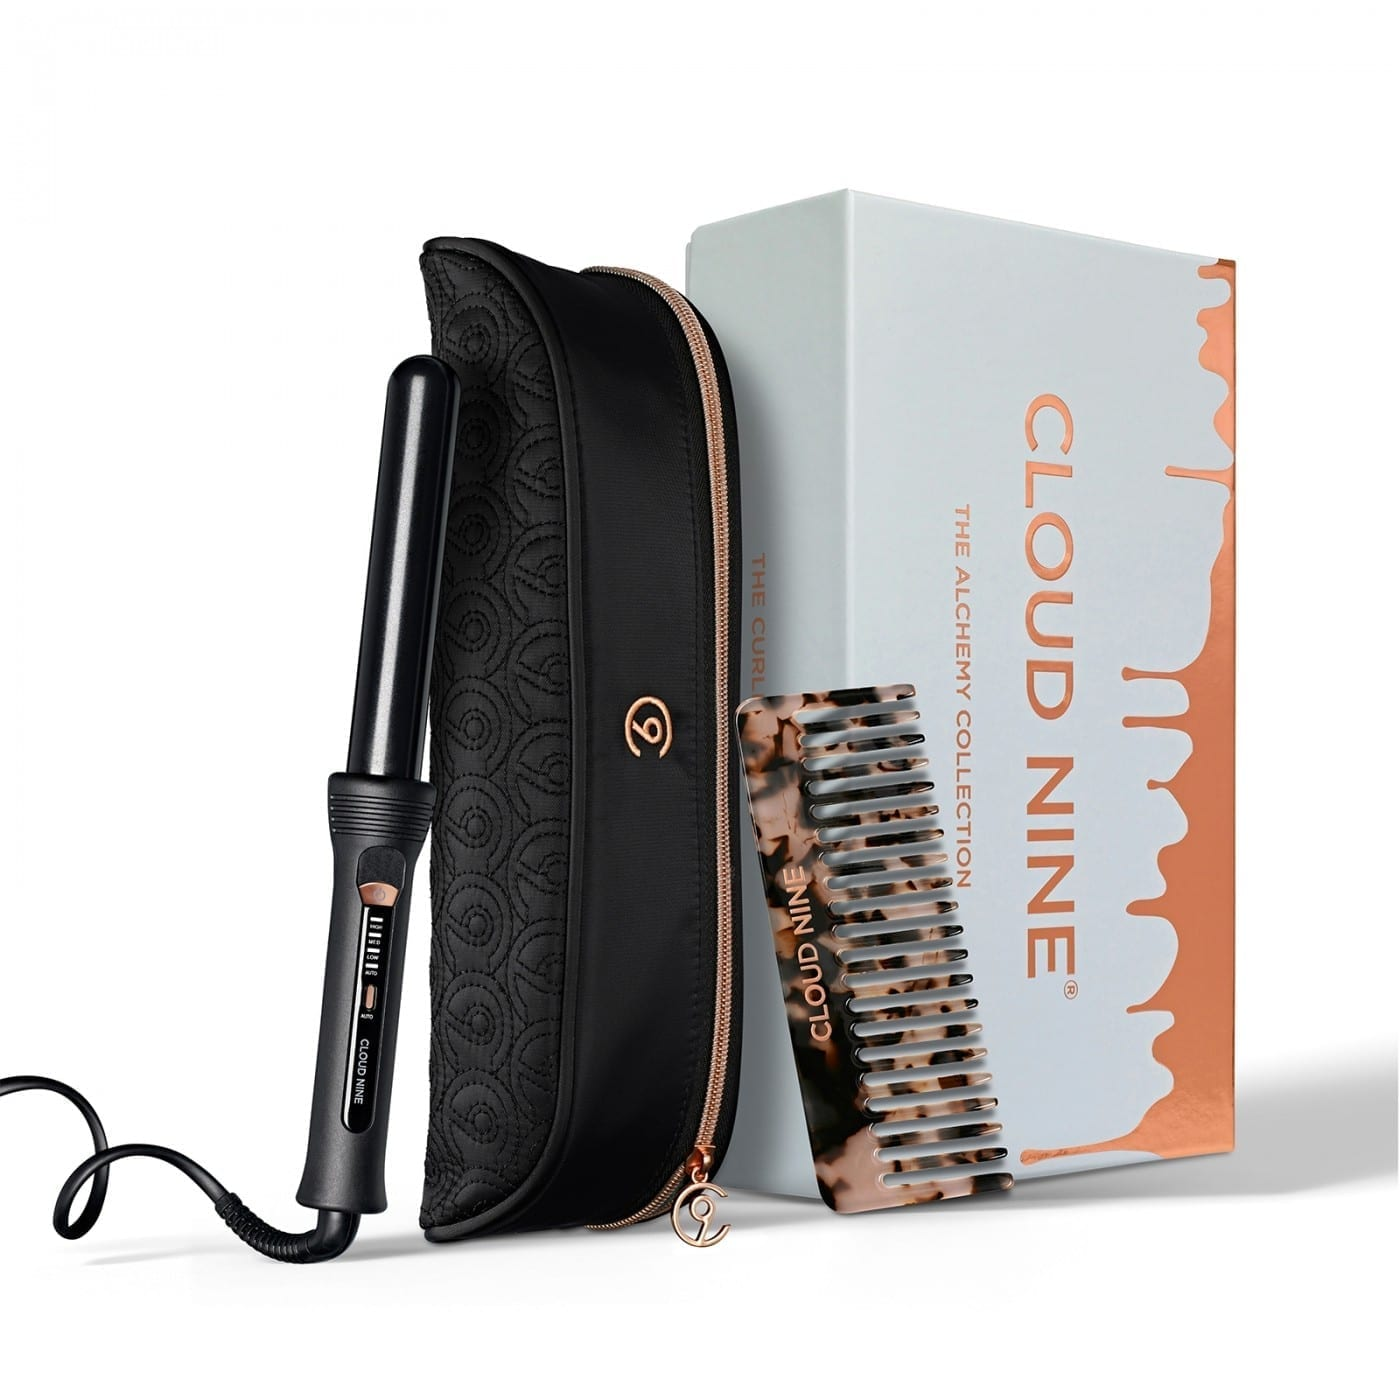 Cloud Nine Curling Wand Alchemy Gift Set 2019 + FREE Luxury Texture Comb